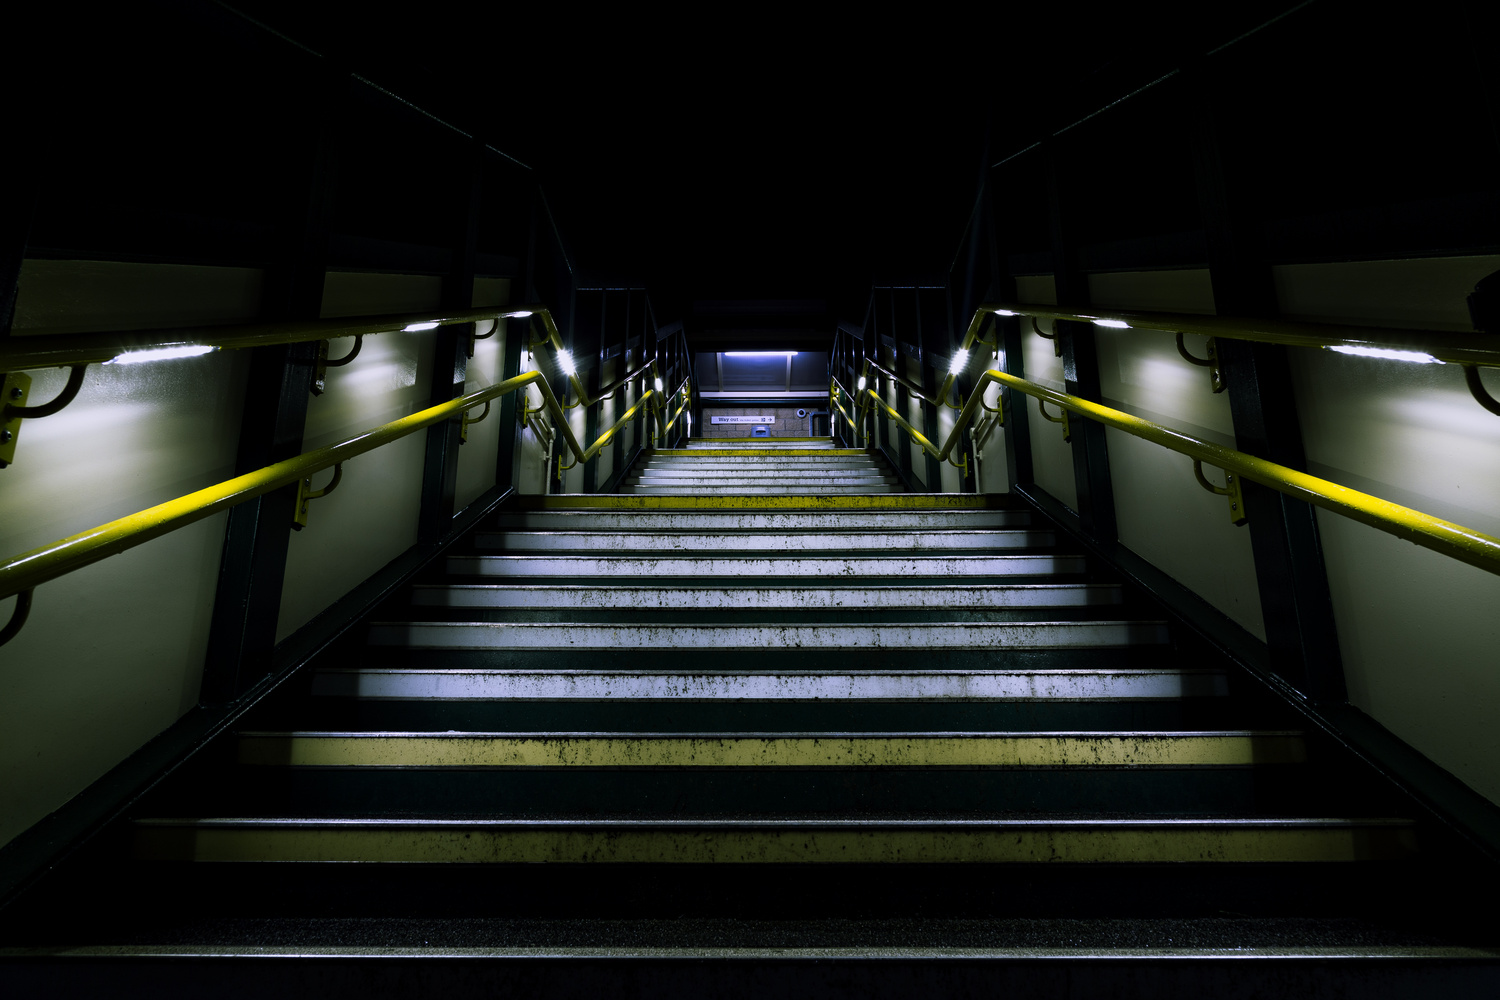 Stairs by Tom Heal